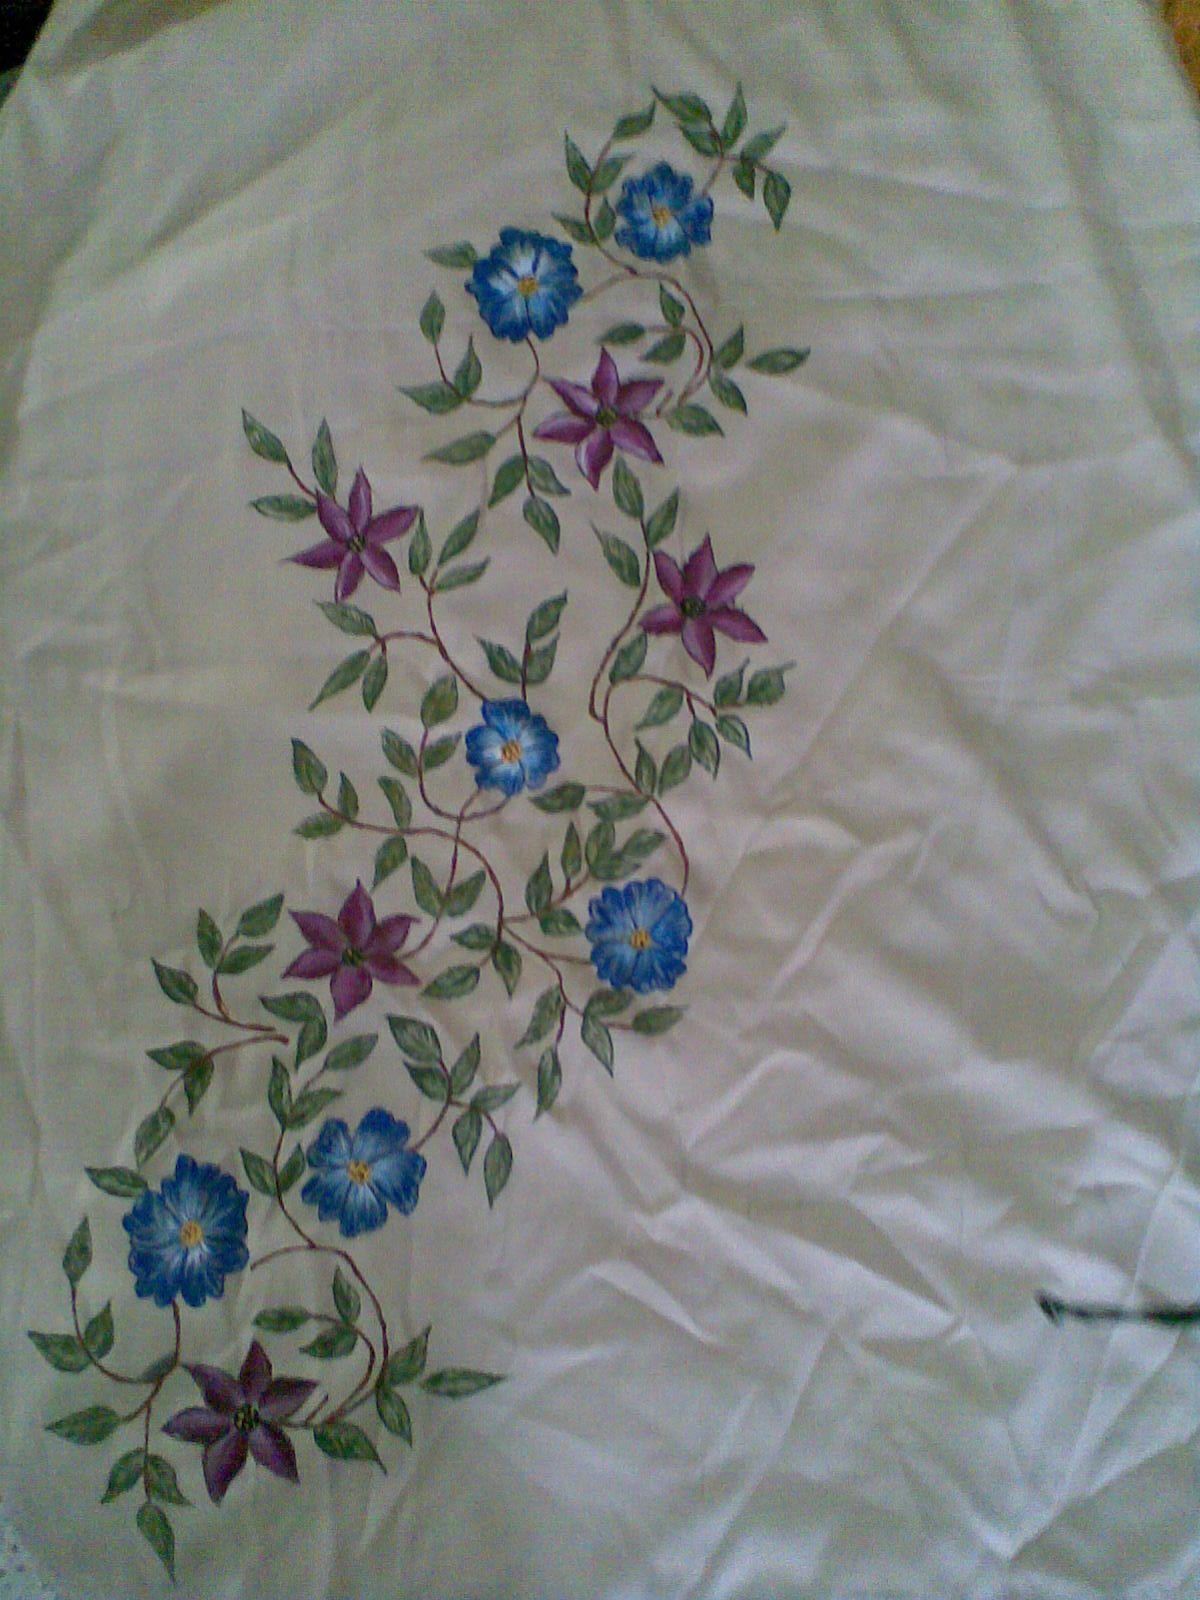 Flower Patterns For Fabric Painting Flowers Healthy